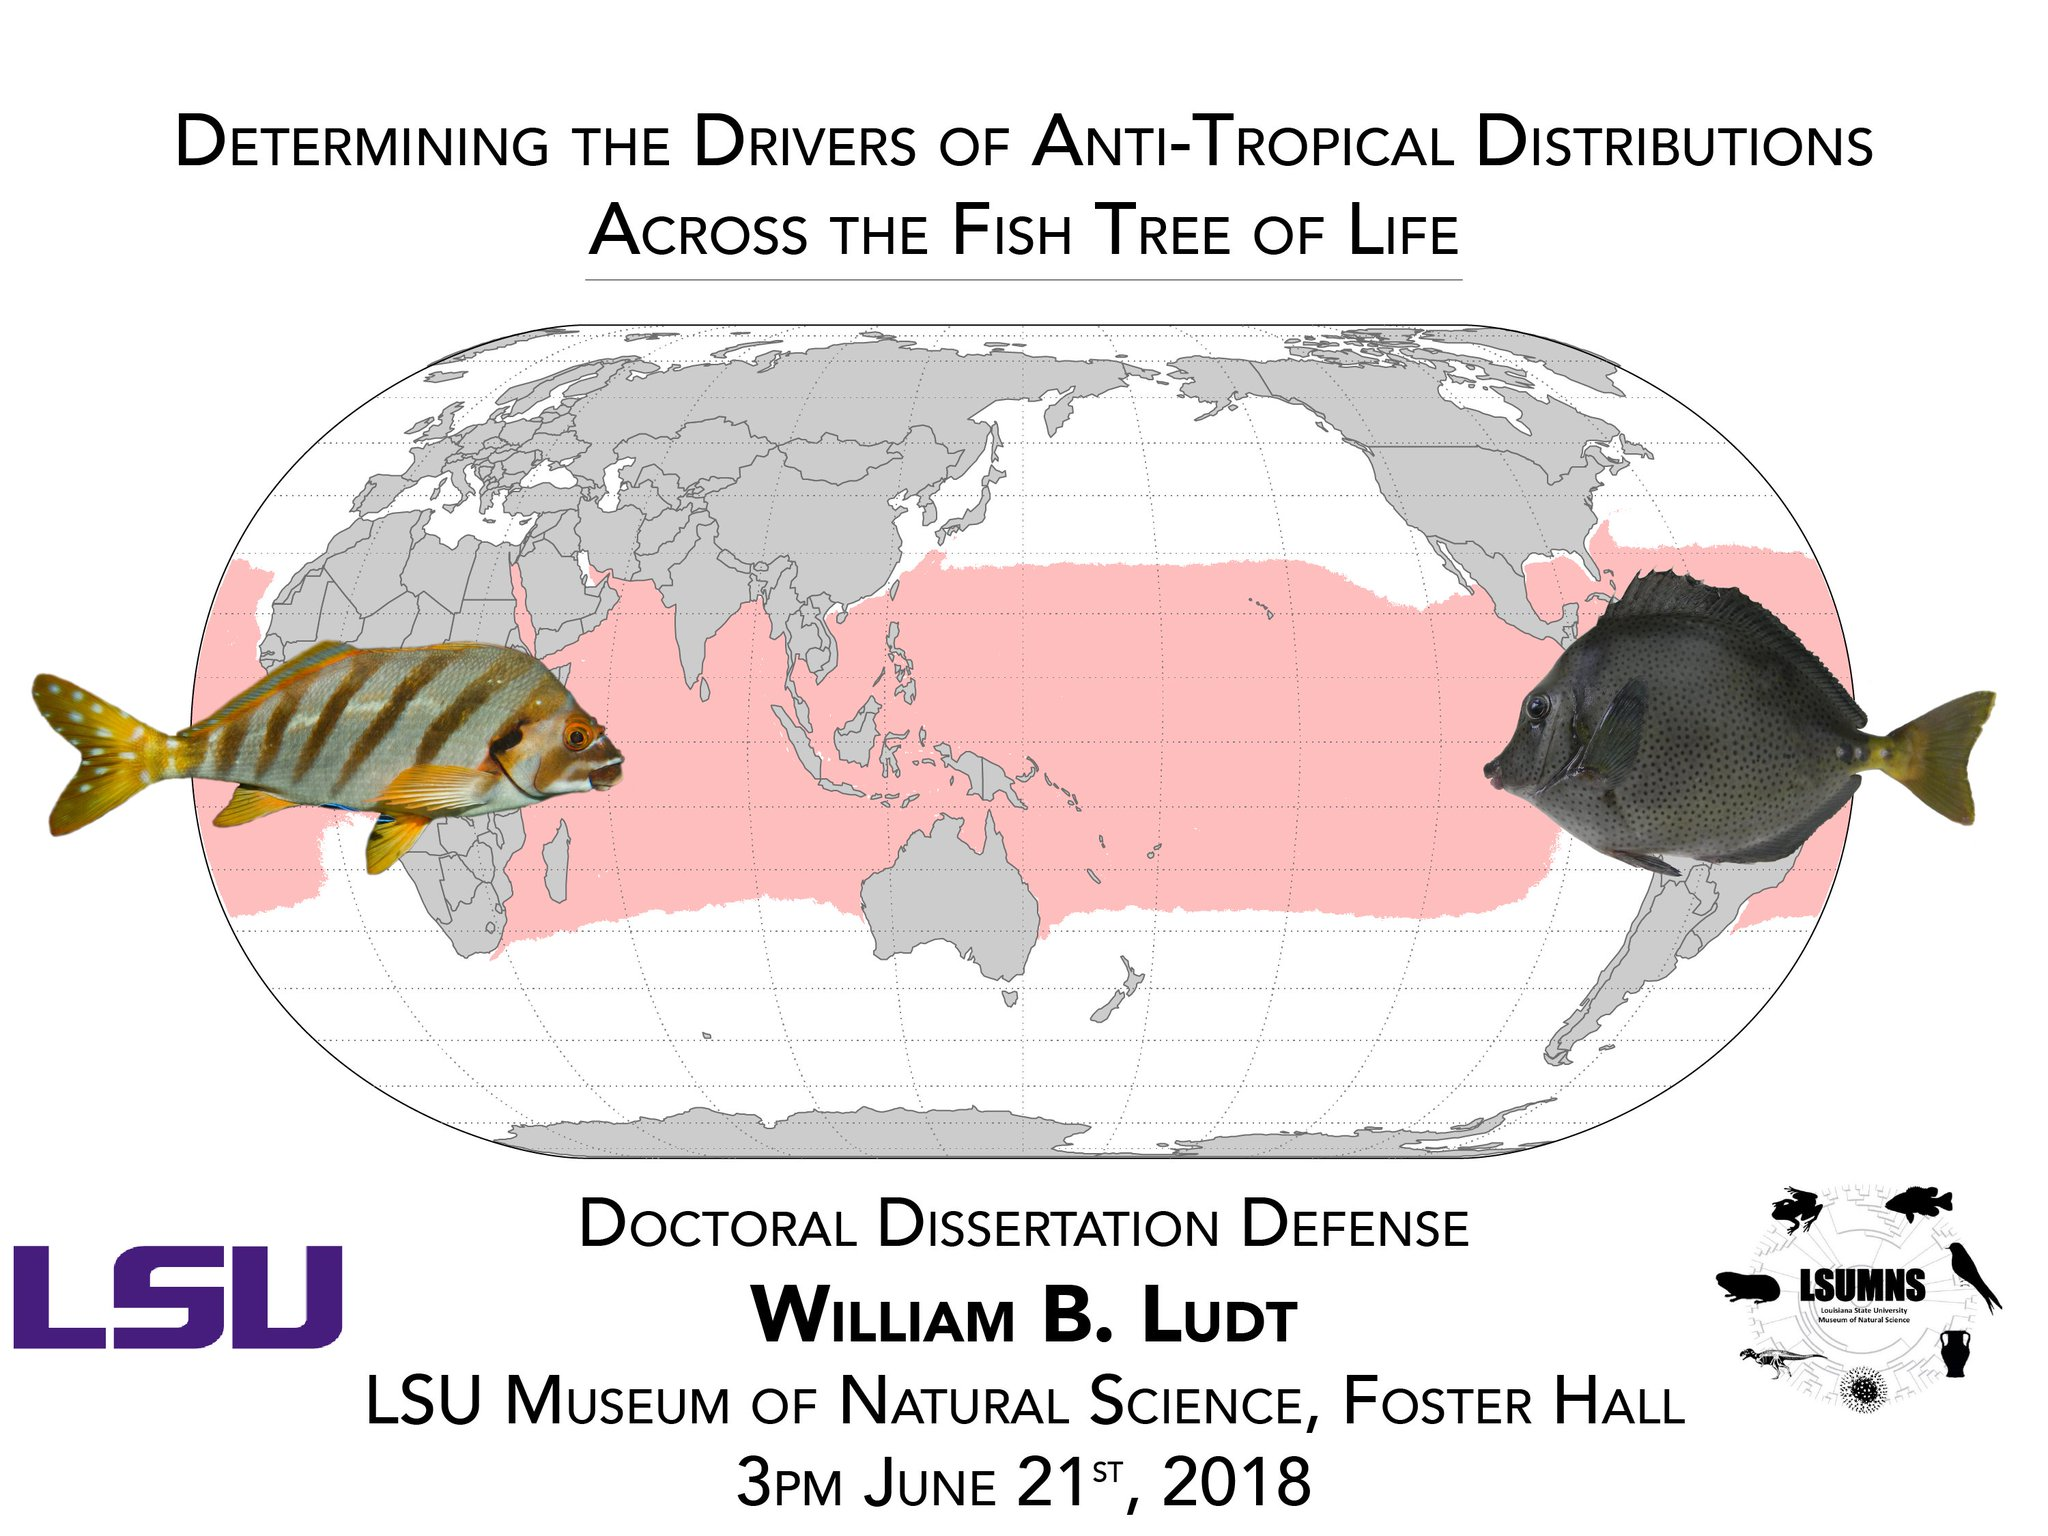 lsu dissertation defenses